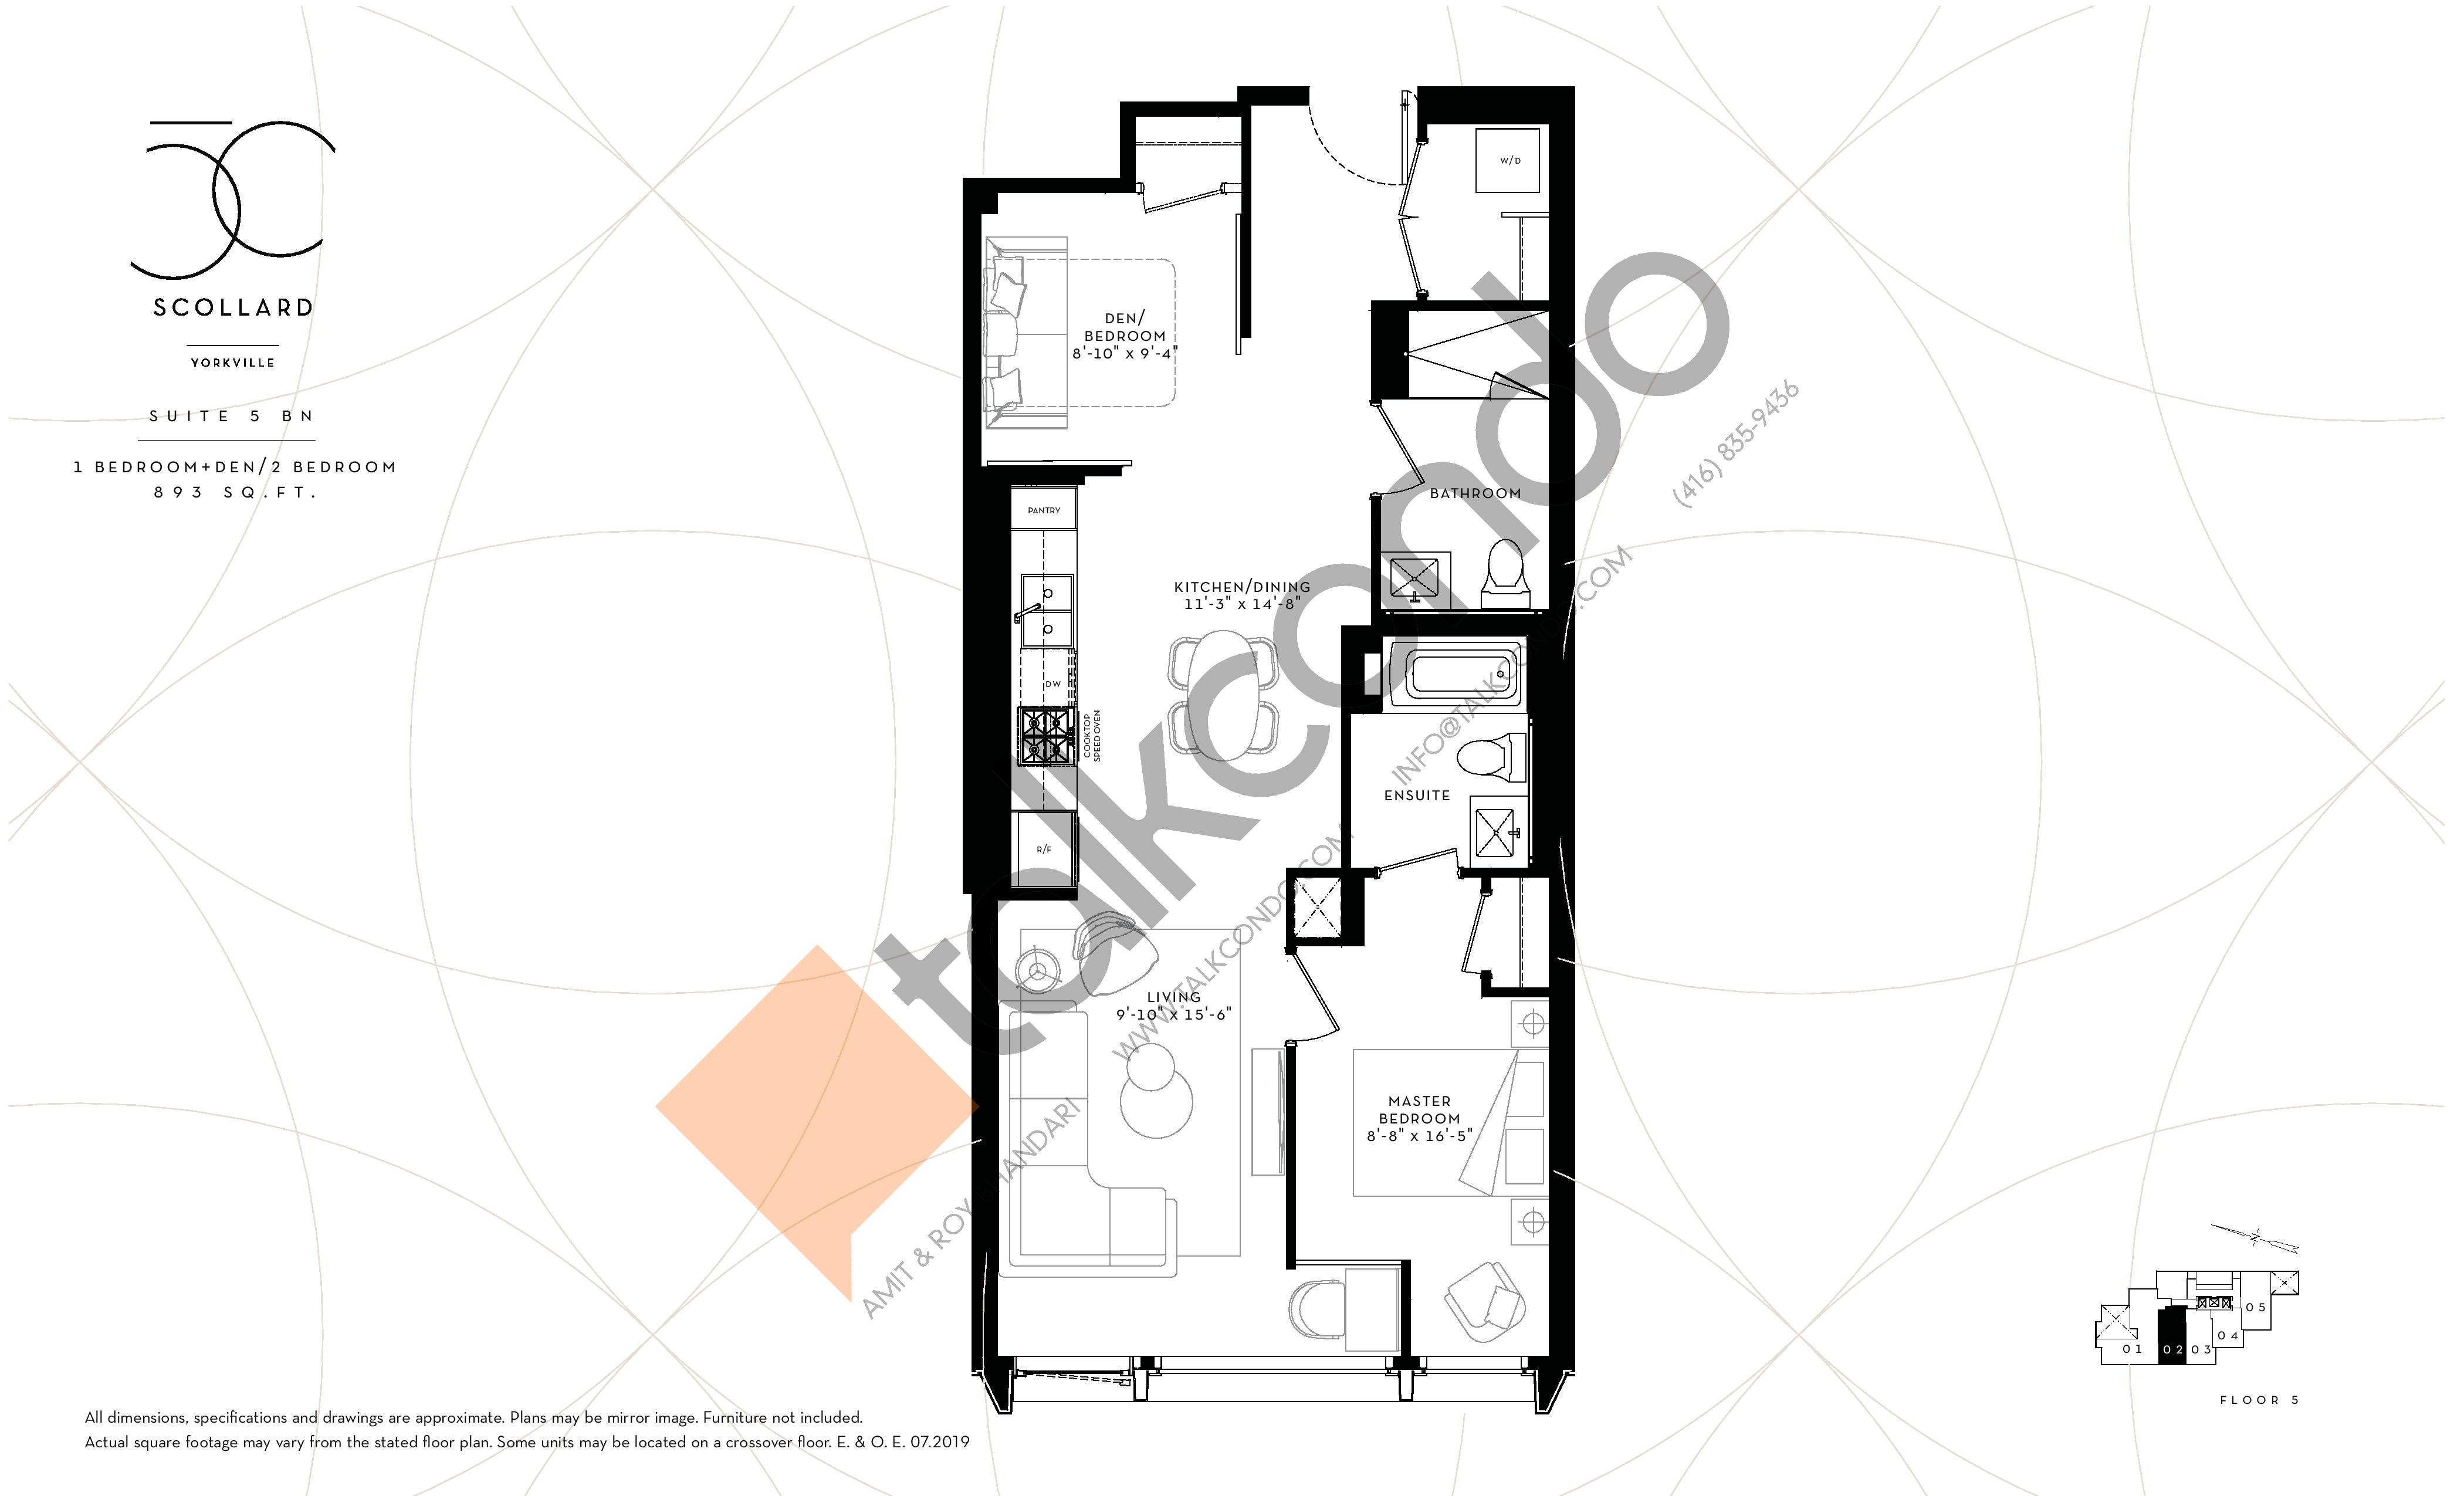 Suite 5 BN Floor Plan at Fifty Scollard Condos - 893 sq.ft